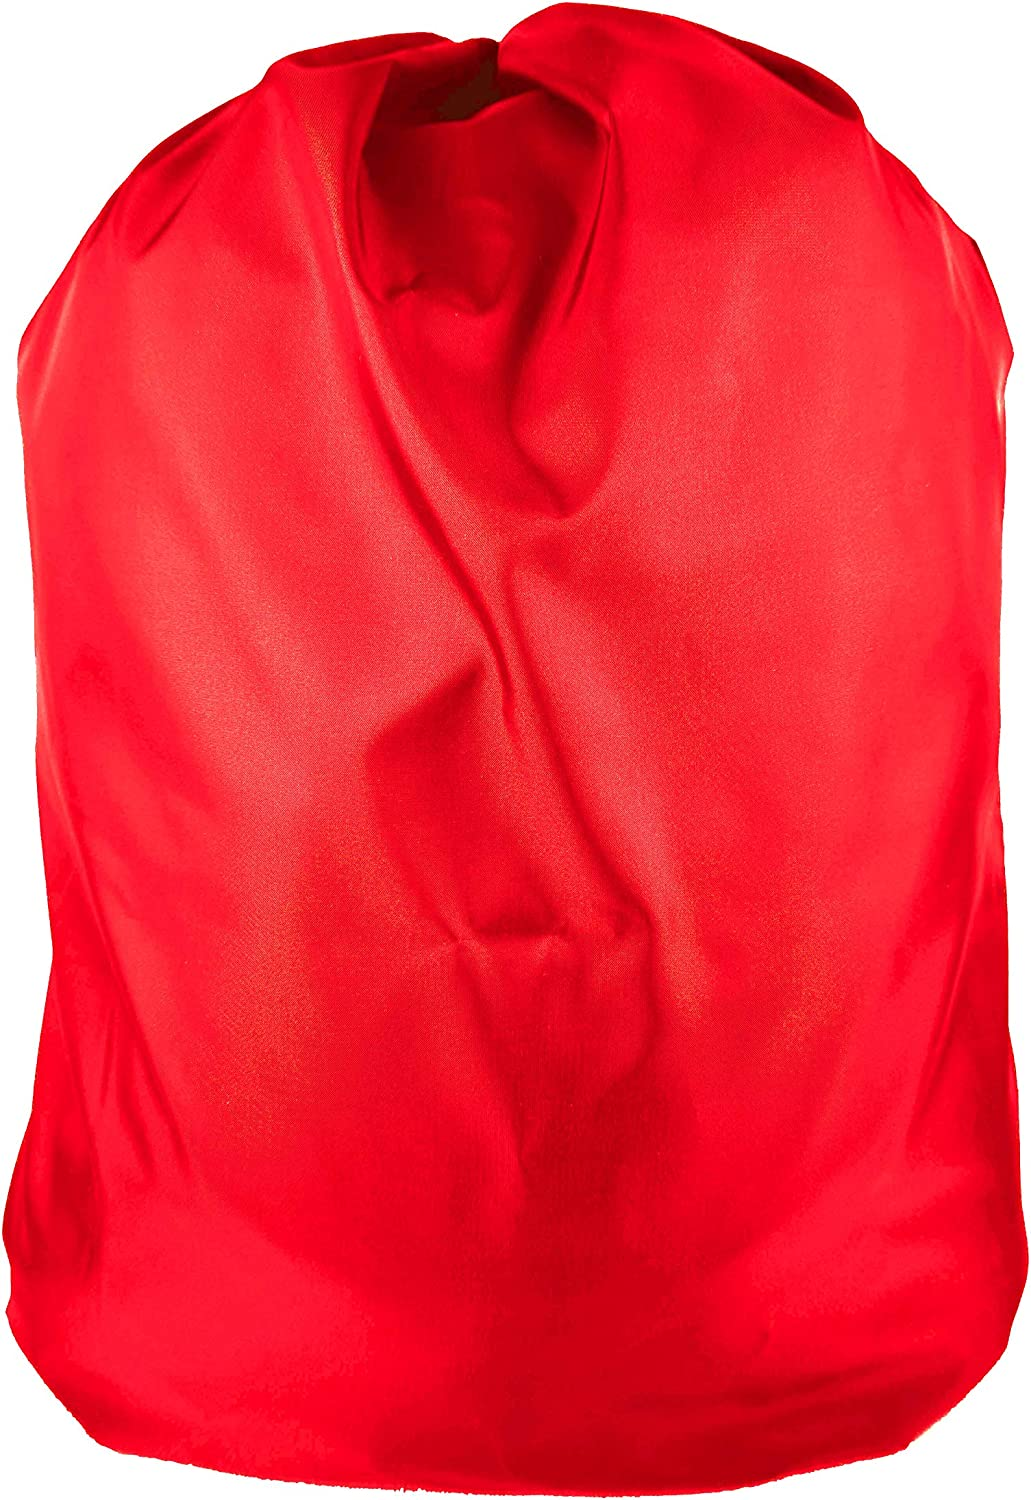 """Heavy Duty Nylon Laundry Storage Bags with Drawstring, Durable, Machine Washable 30' x 40"""" Choose The Color (Red)"""